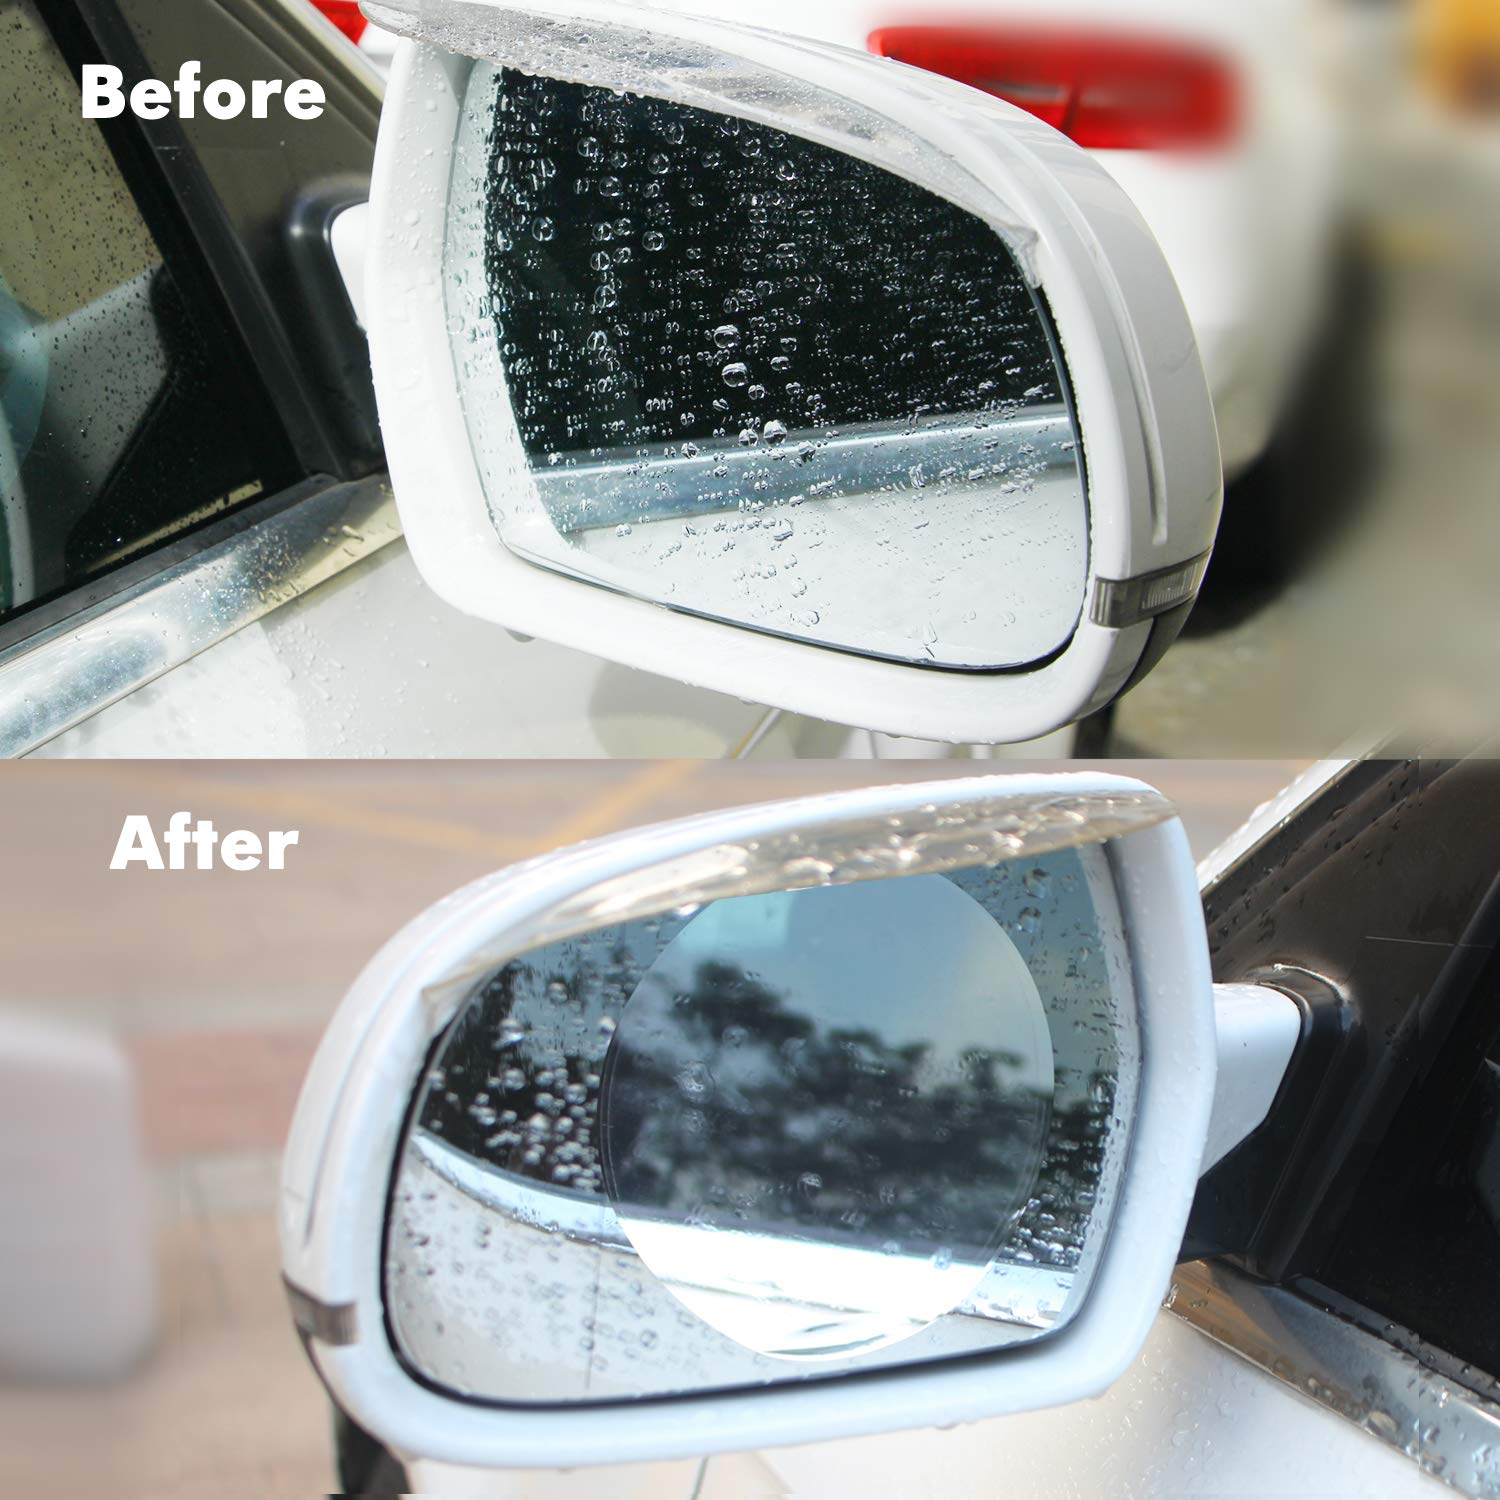 YIJINSHENG 4 PCS Car Rearview Mirror Nano Film,Universal Anti-fog Waterproof Film Window Clear HD Film round Rainproof,Anti-glare,Anti-scratch,Rear View Mirror Protective Film